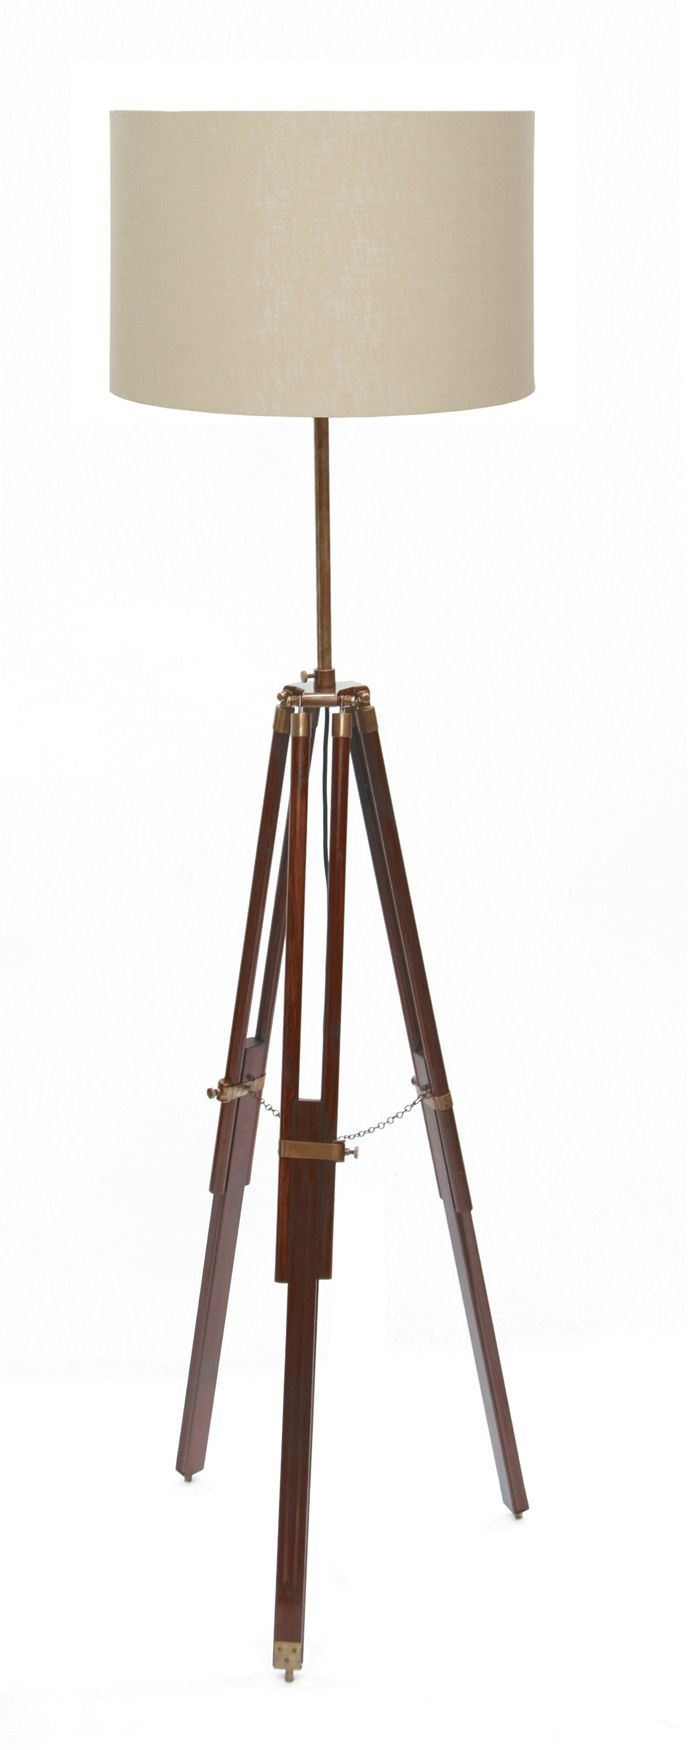 Dark wood tripod floor lamp base mozeypictures Image collections